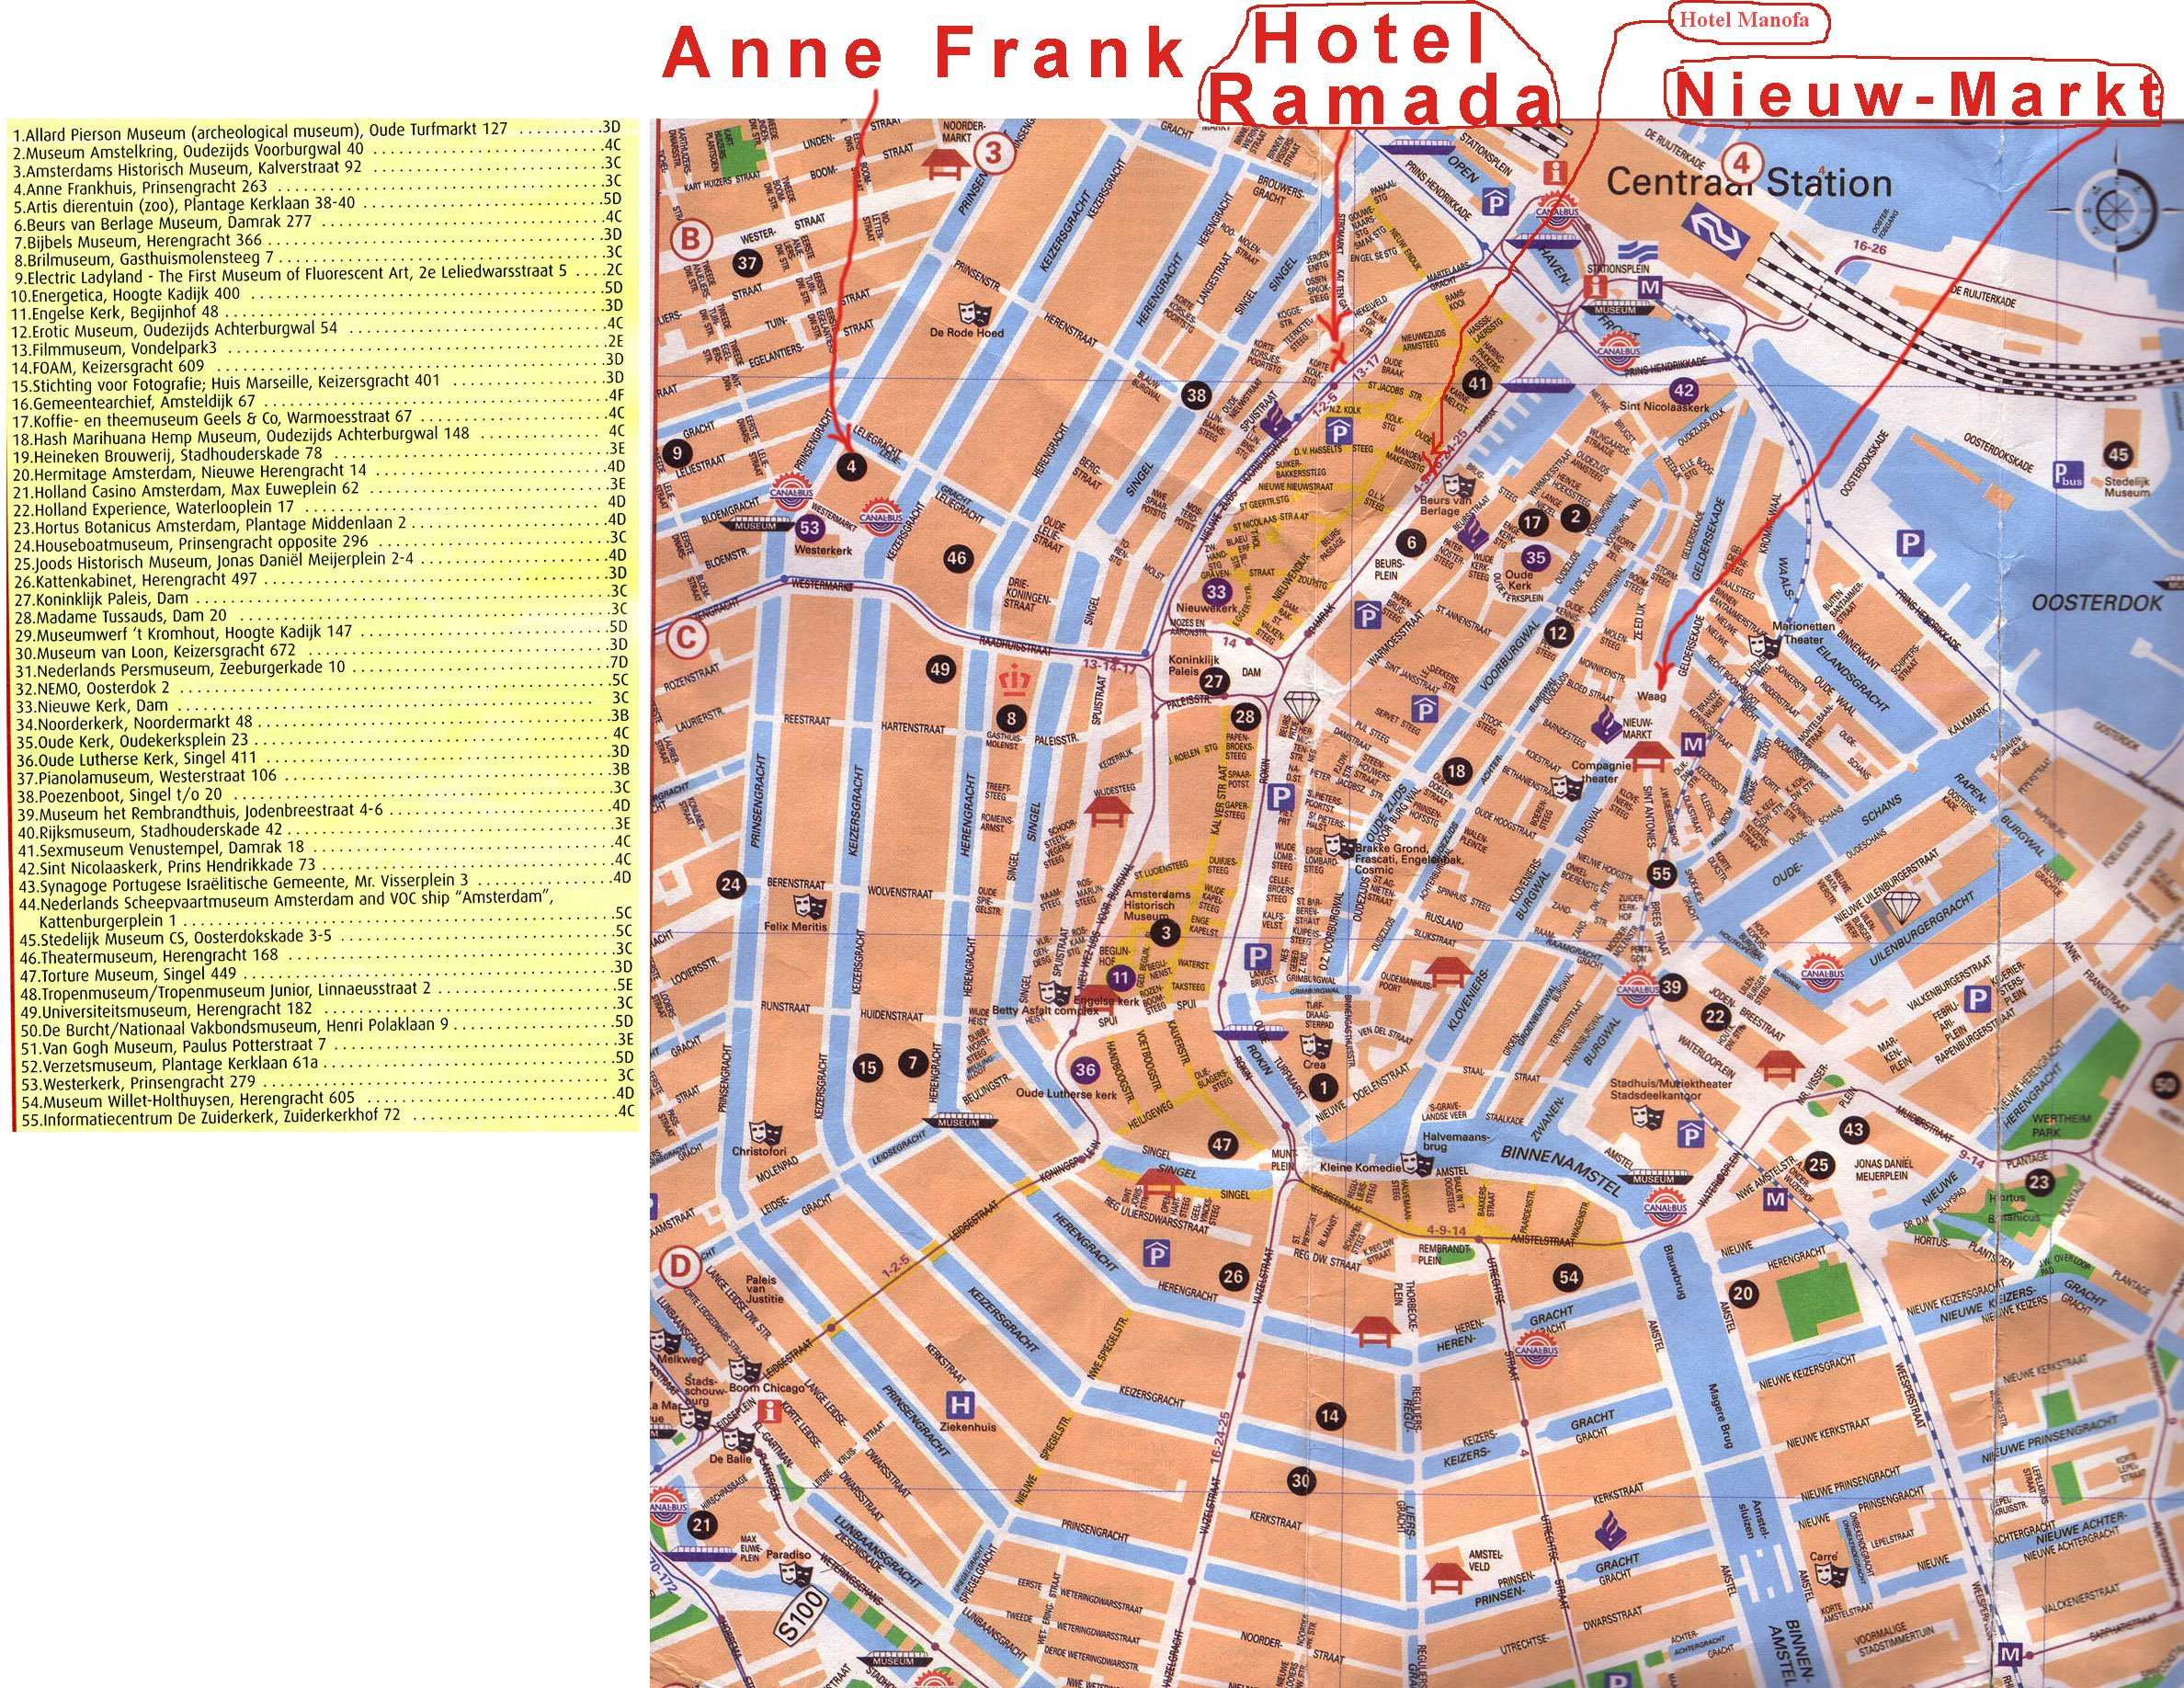 Cartina Amsterdam Download.Large Amsterdam Maps For Free Download And Print High Resolution